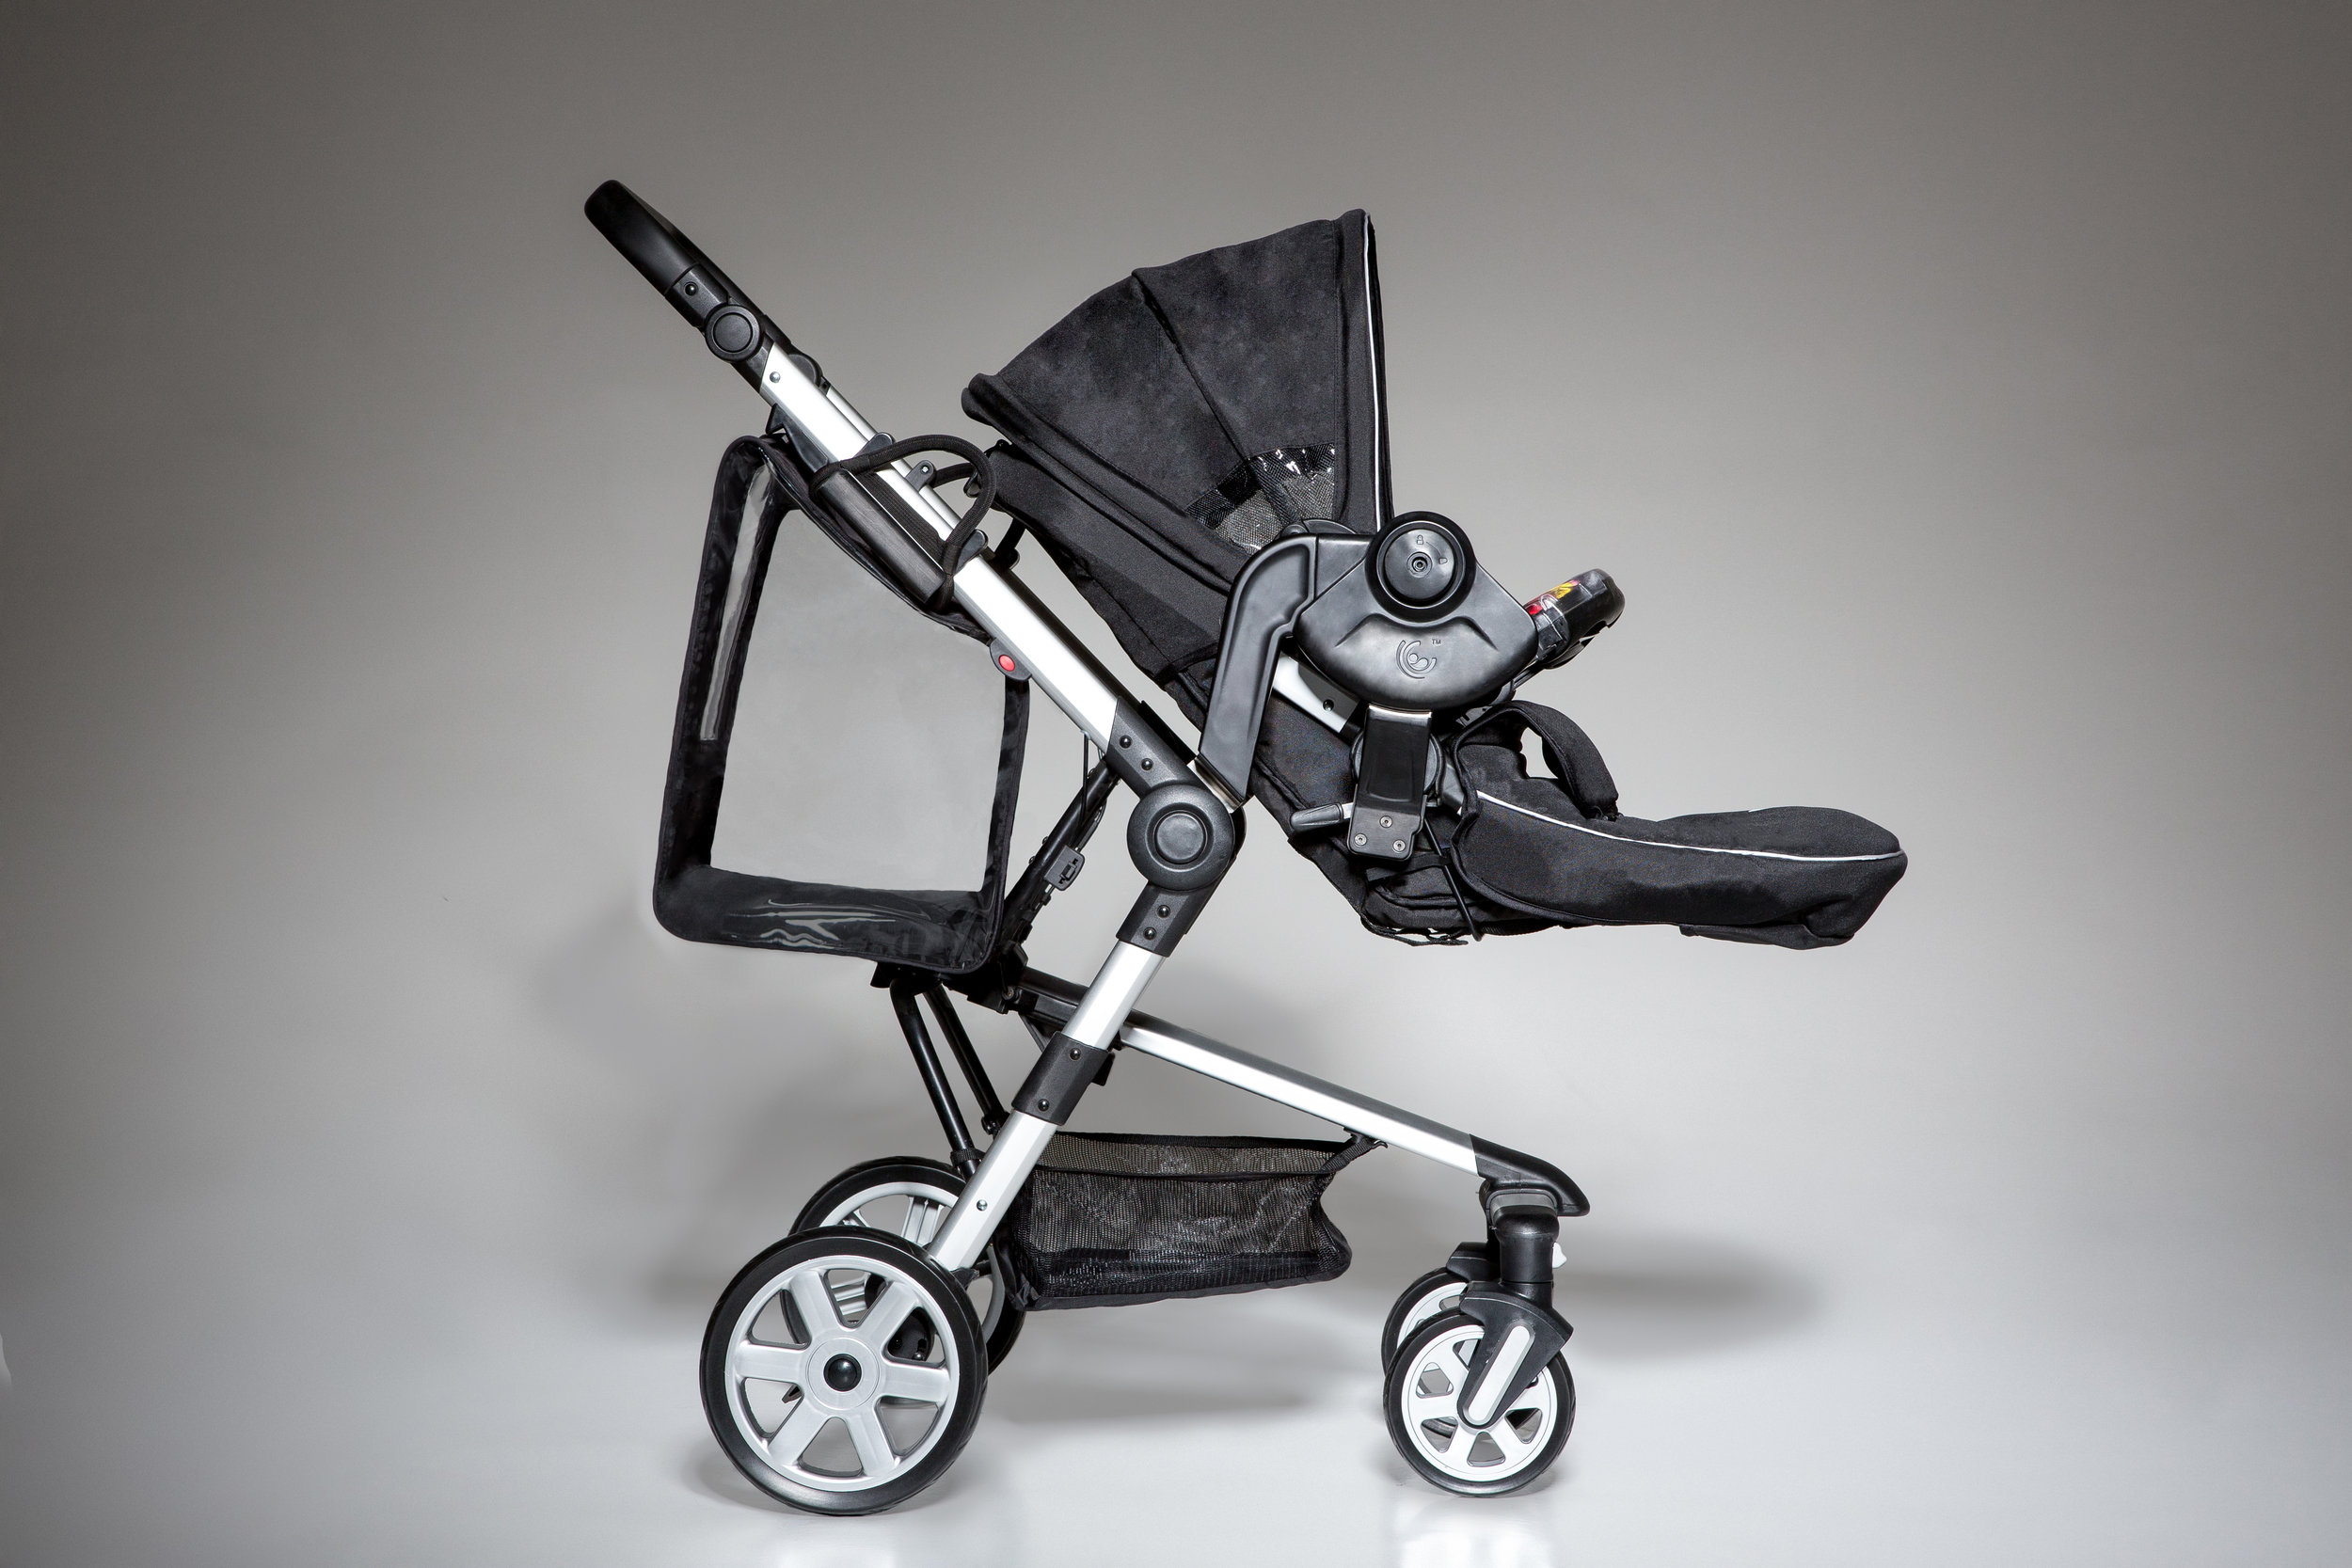 The EcoSwingi: - EcoSwingi is a game changing stroller system providing swinging, shopping and play-on features. 10,000+ followers. EcoPrams' brand estimated to be worth £18m by 2023 - we carry expert knowledge of the market. Baby Product Market size to reach USD 121 billion by 2025